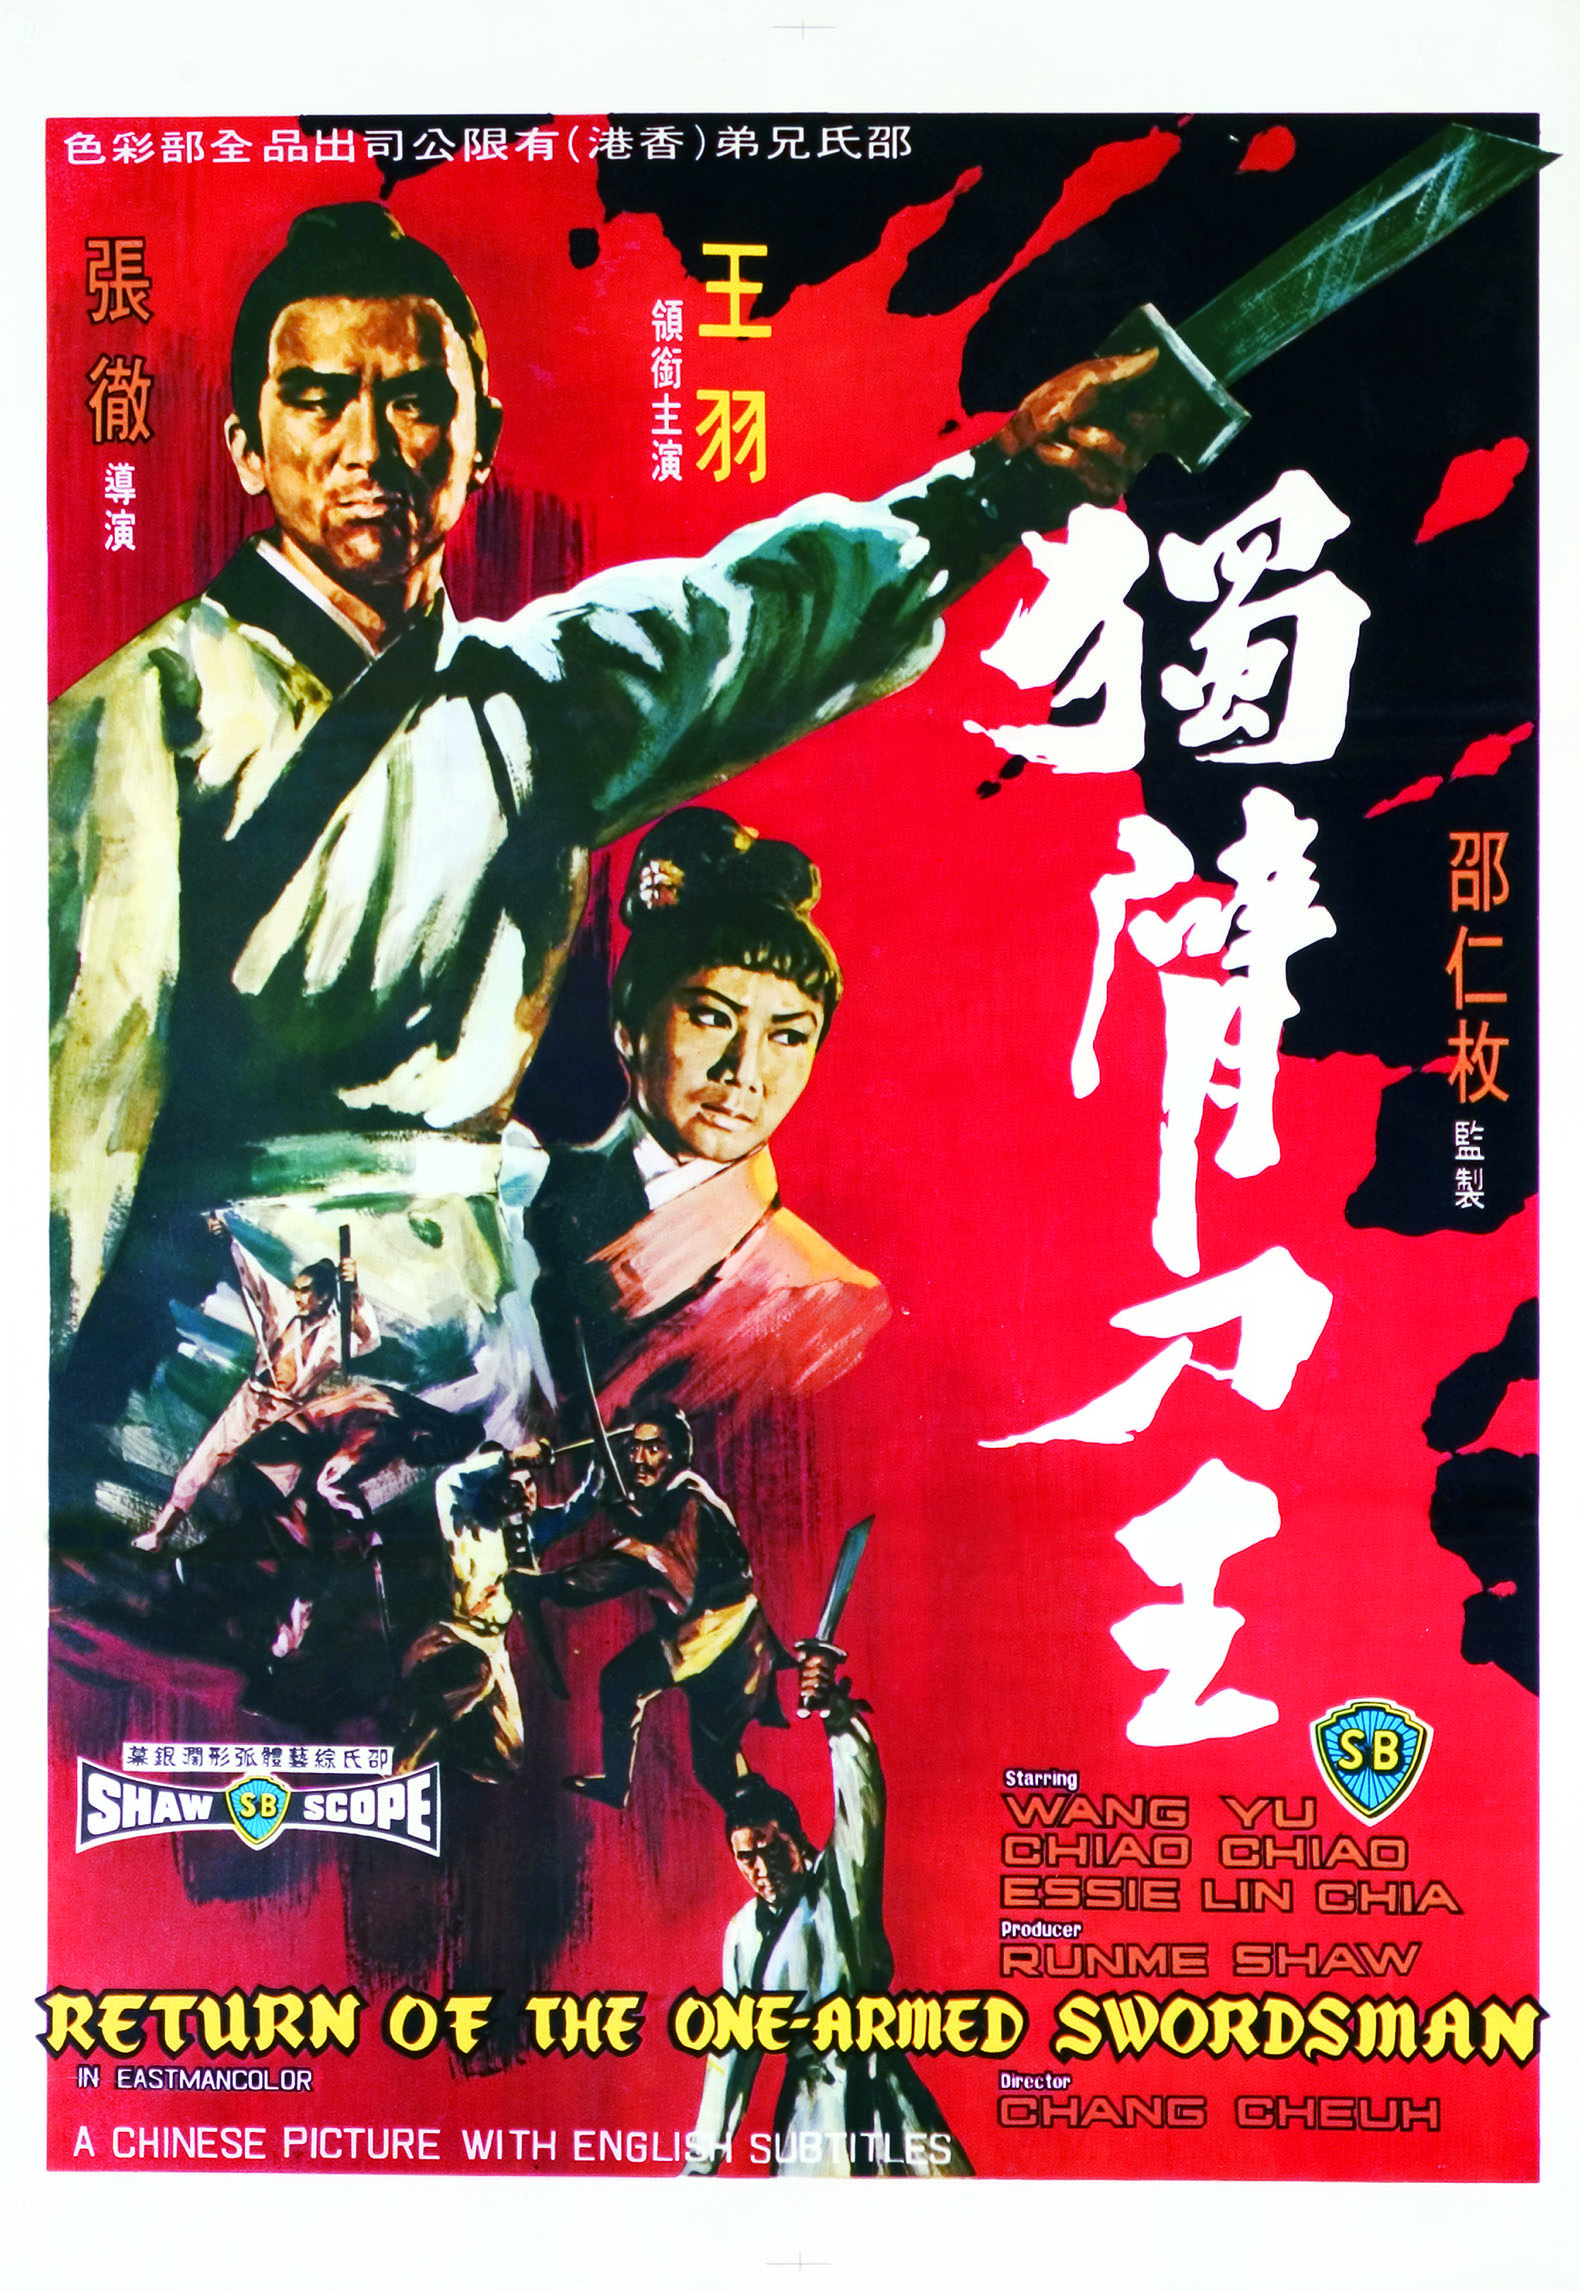 celestial pictures shaw brothers top 10 blu ray box sets